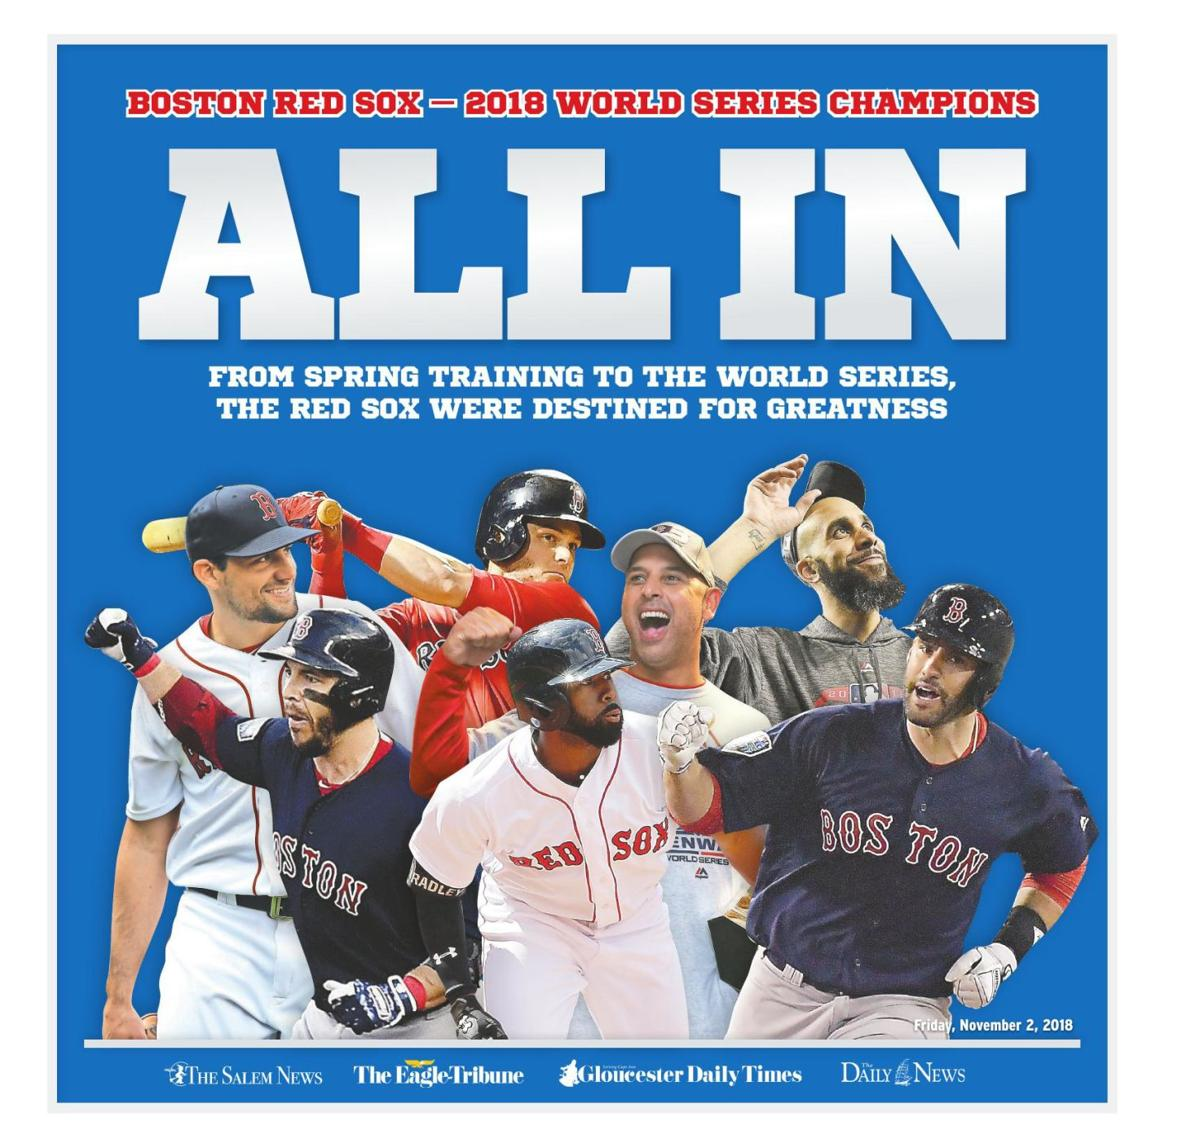 BOSTON RED SOX – 2018 WORLD SERIES CHAMPIONS | Special